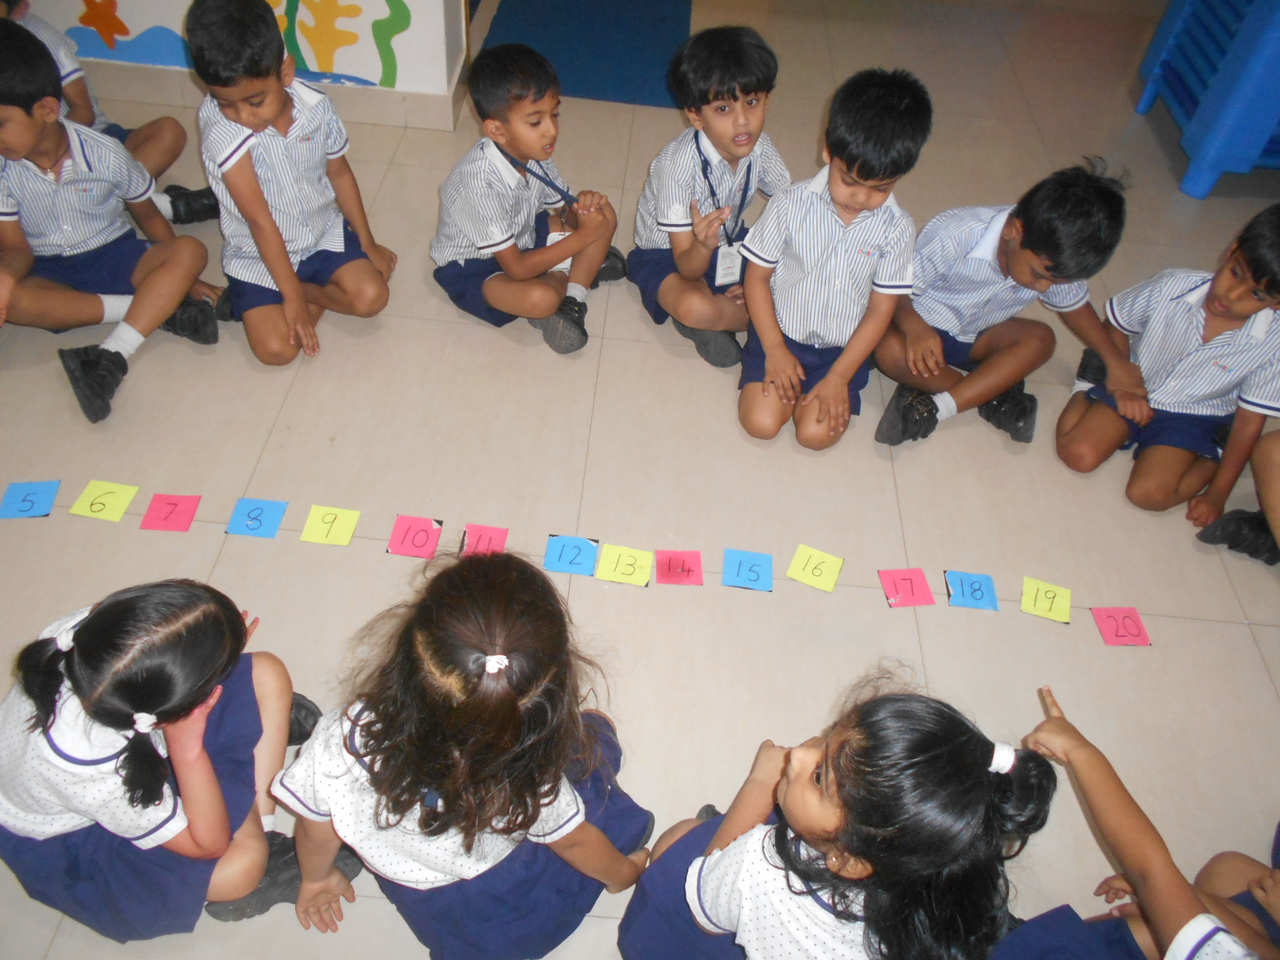 SEQUENCING OF NUMBERS 1 TO 20